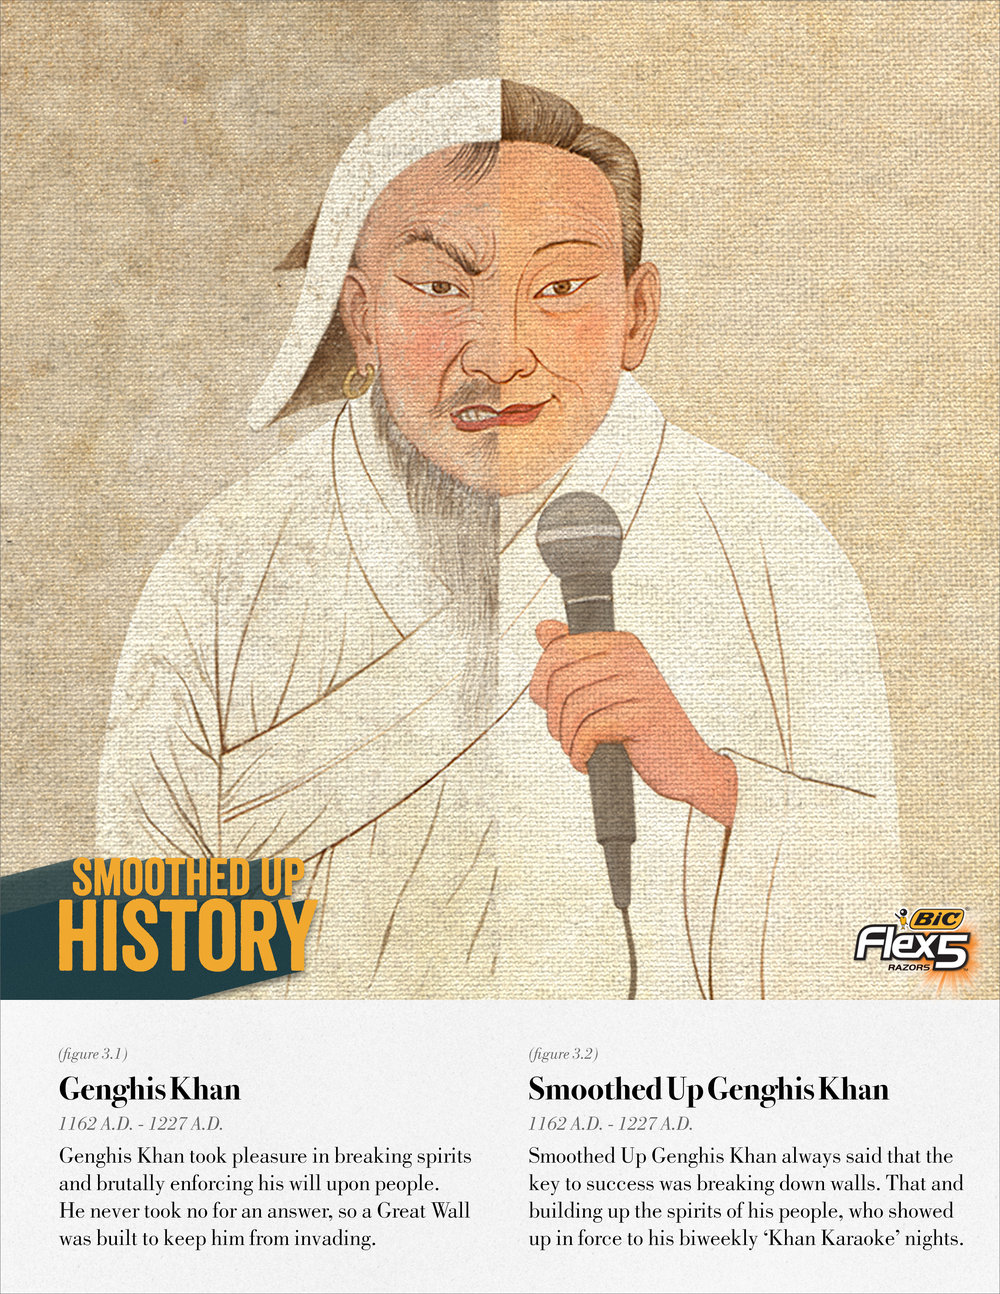 SmoothedUpHistory_Textbook_Layout_0002_Genghis Khan.jpg